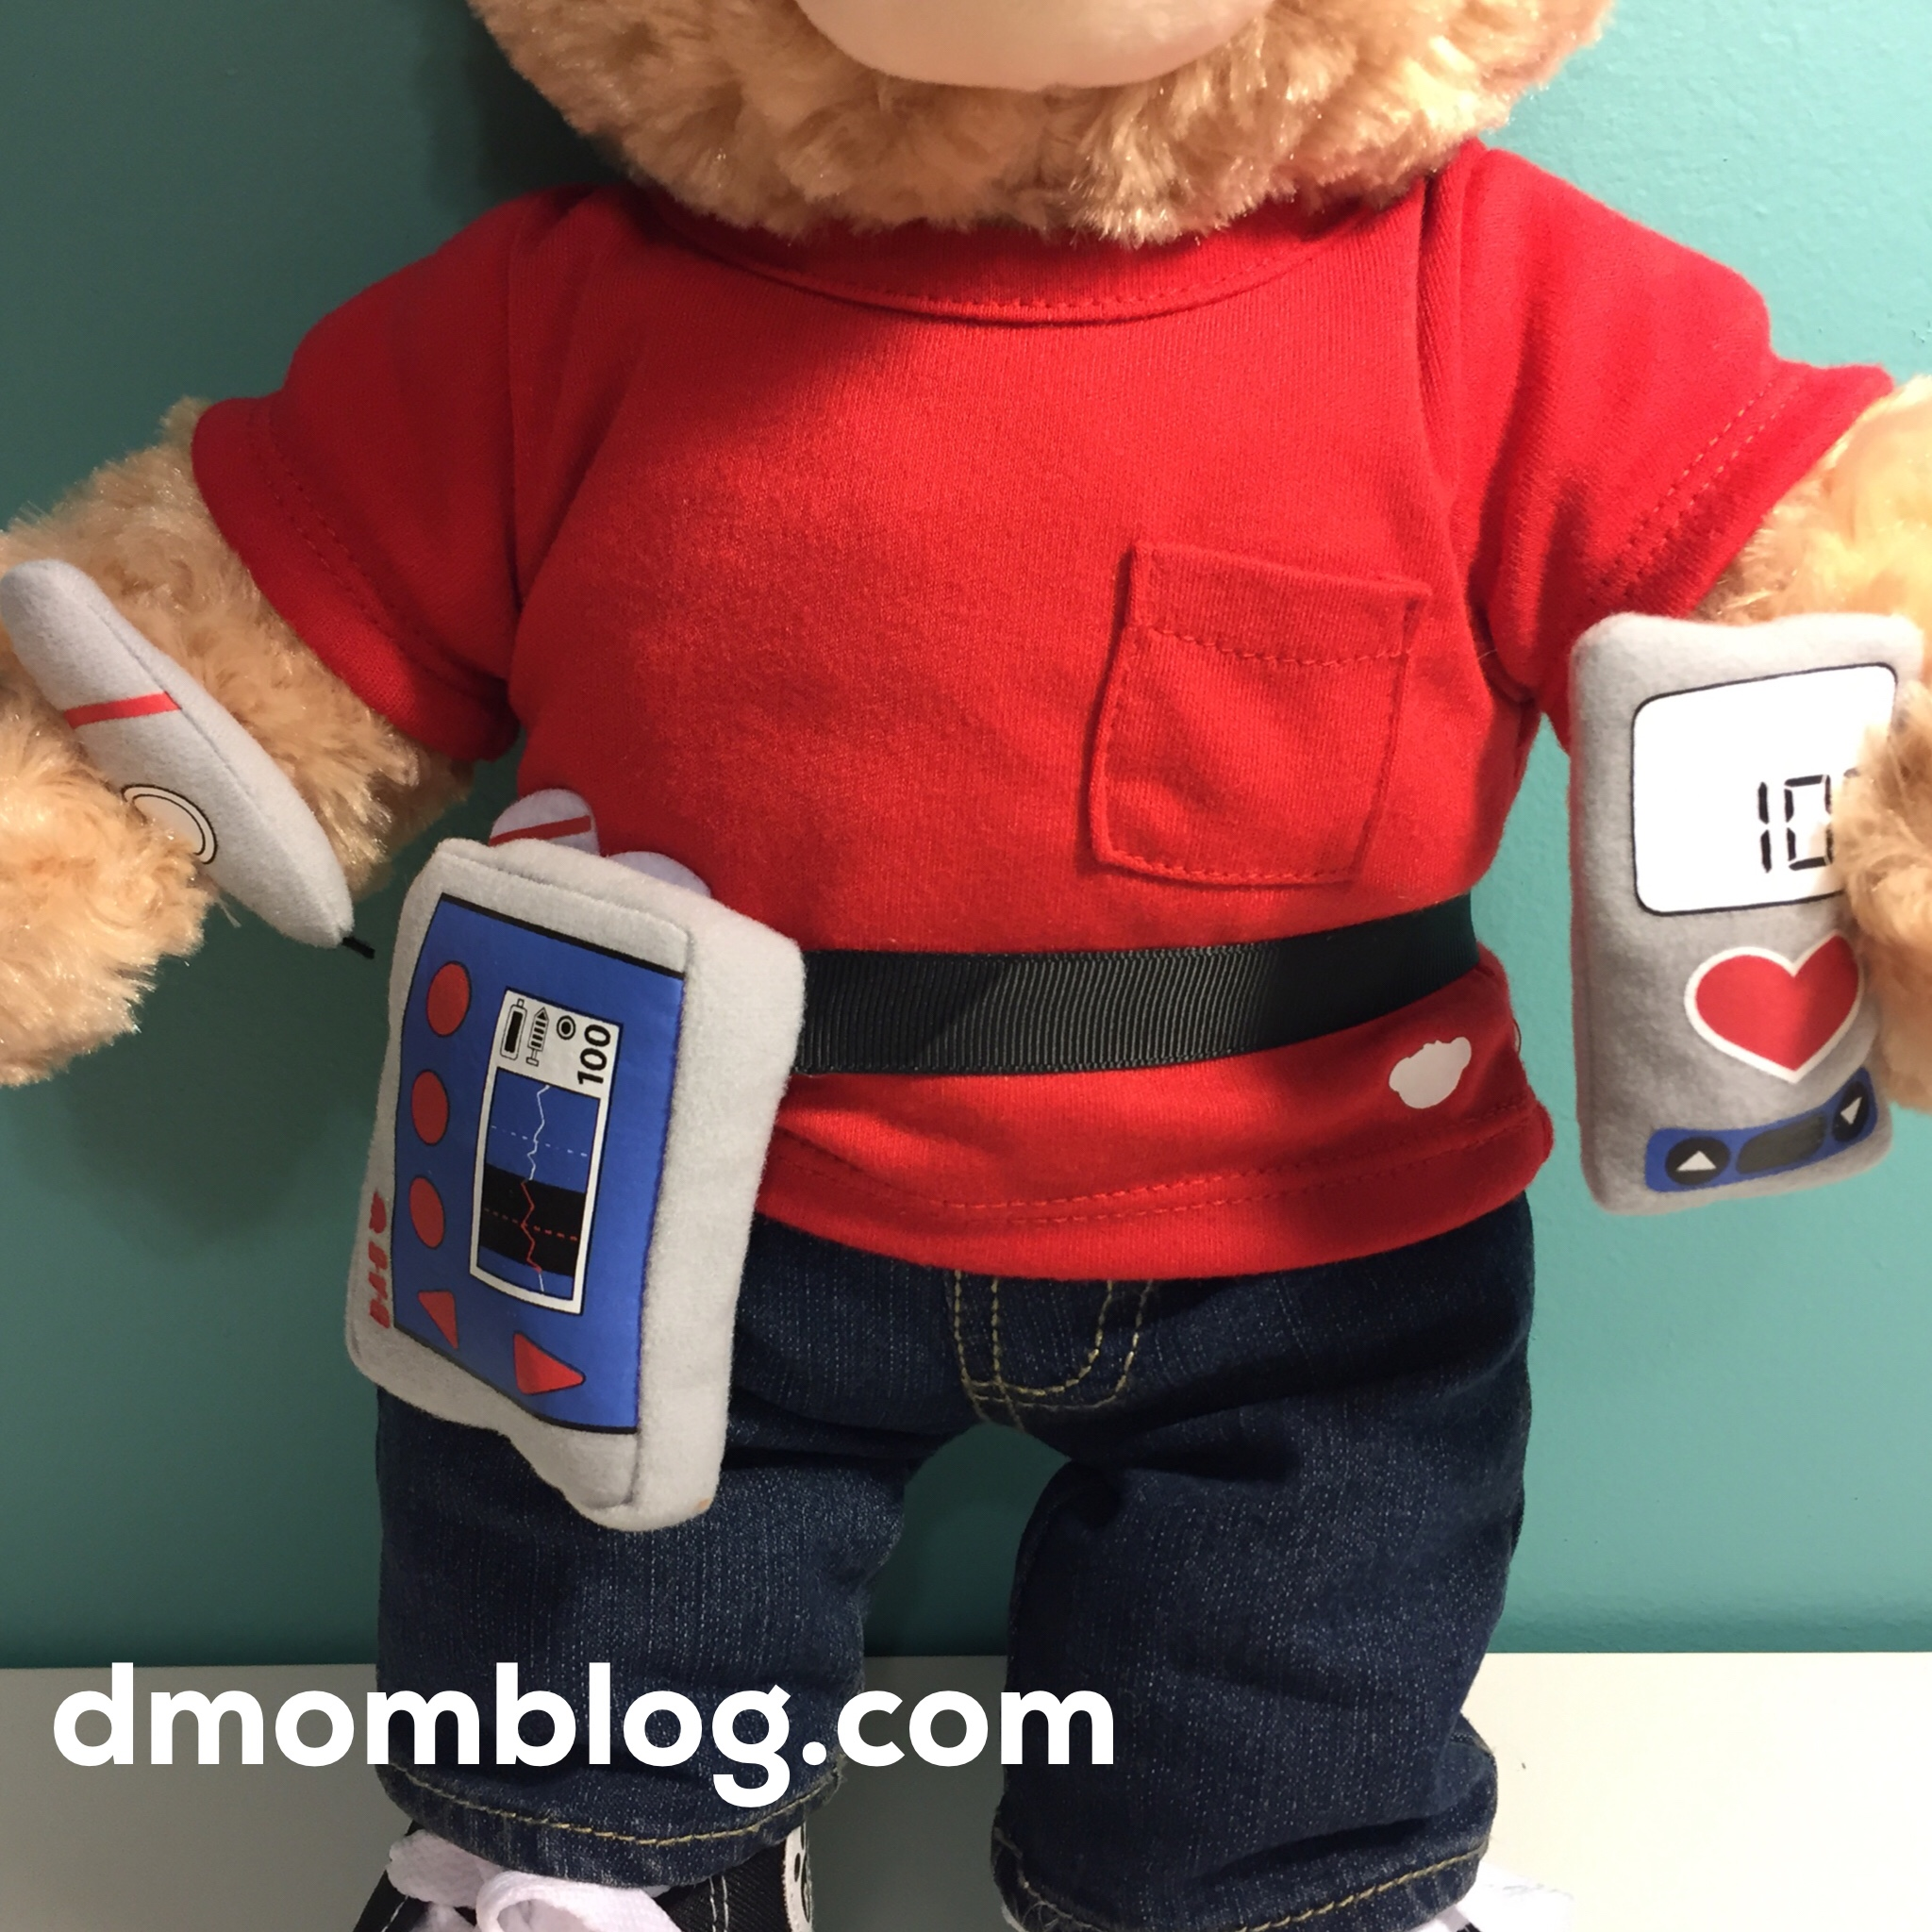 Build A Bear Diabetes Kit An Insulin Pump For Your Wrist Red Disclosure Sent Us And Happy Hugs Review Consideration I Was Not Compensated All Opinions Are My Own